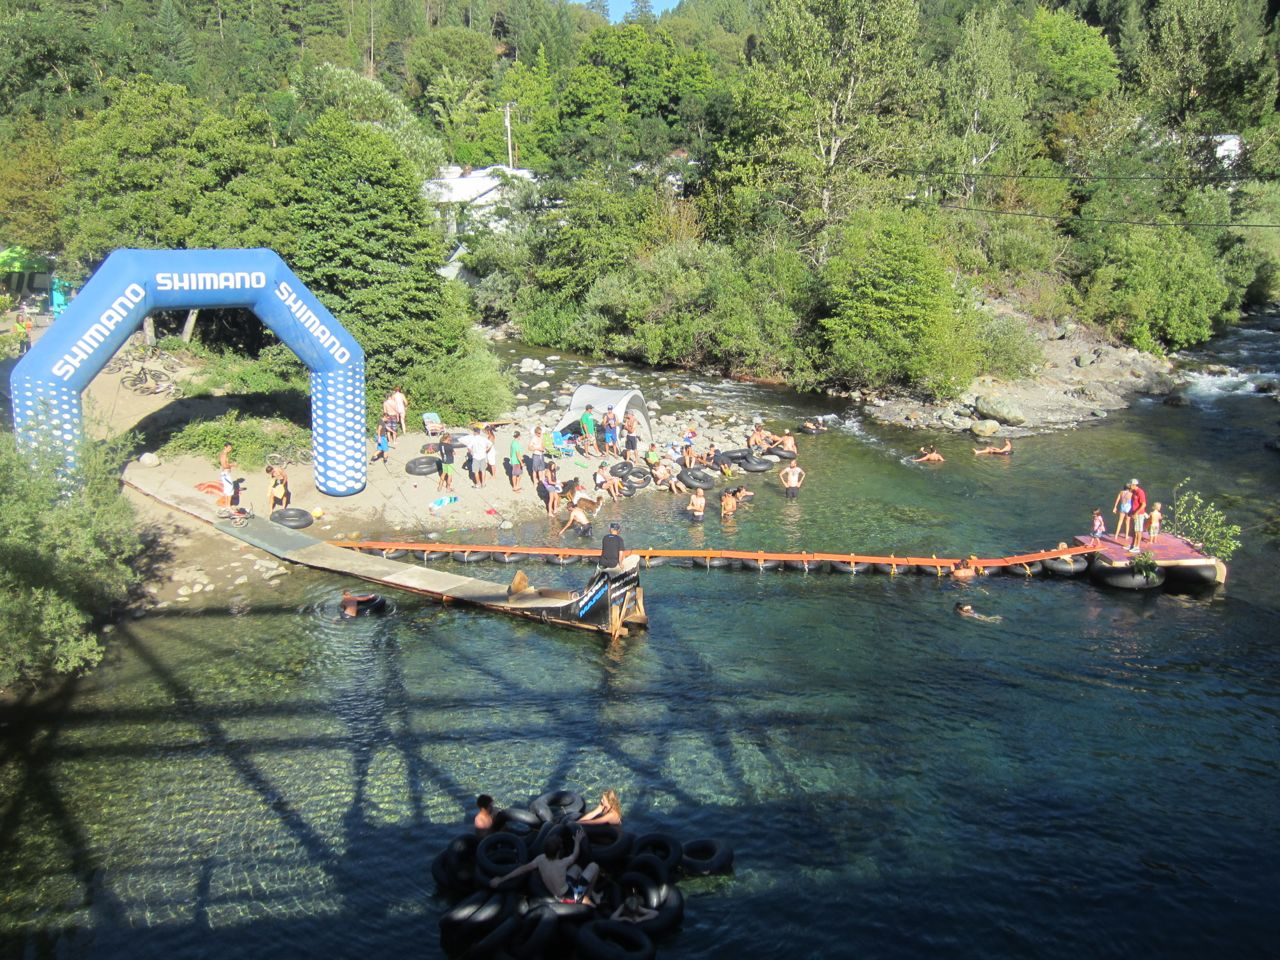 Where it all happens – the River Jump World Championships will be held on Saturday.